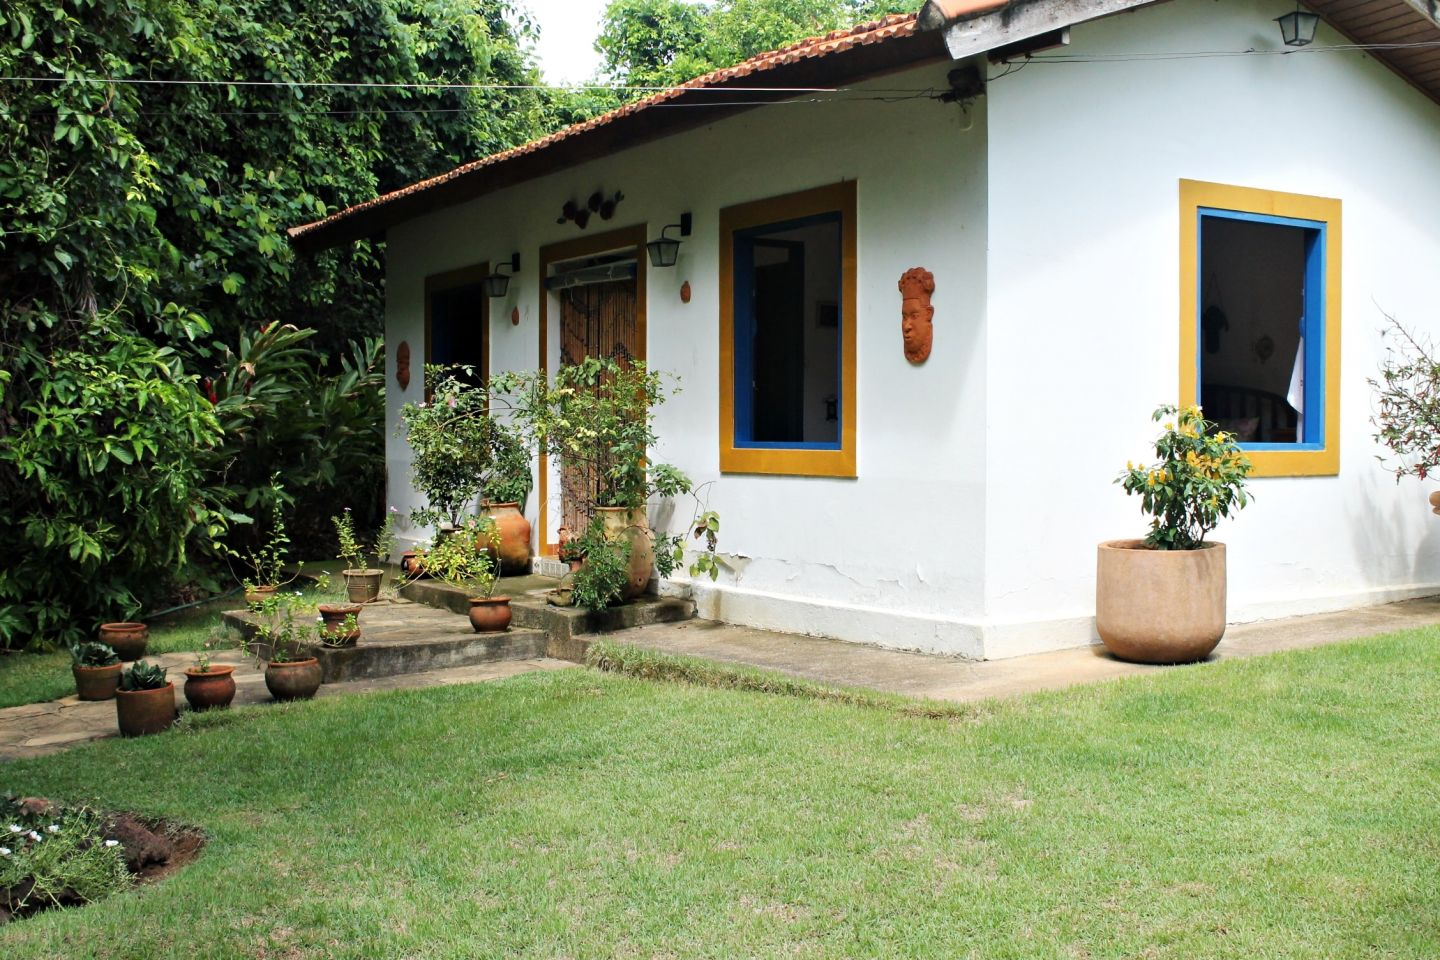 Anuncios in Houses and Land